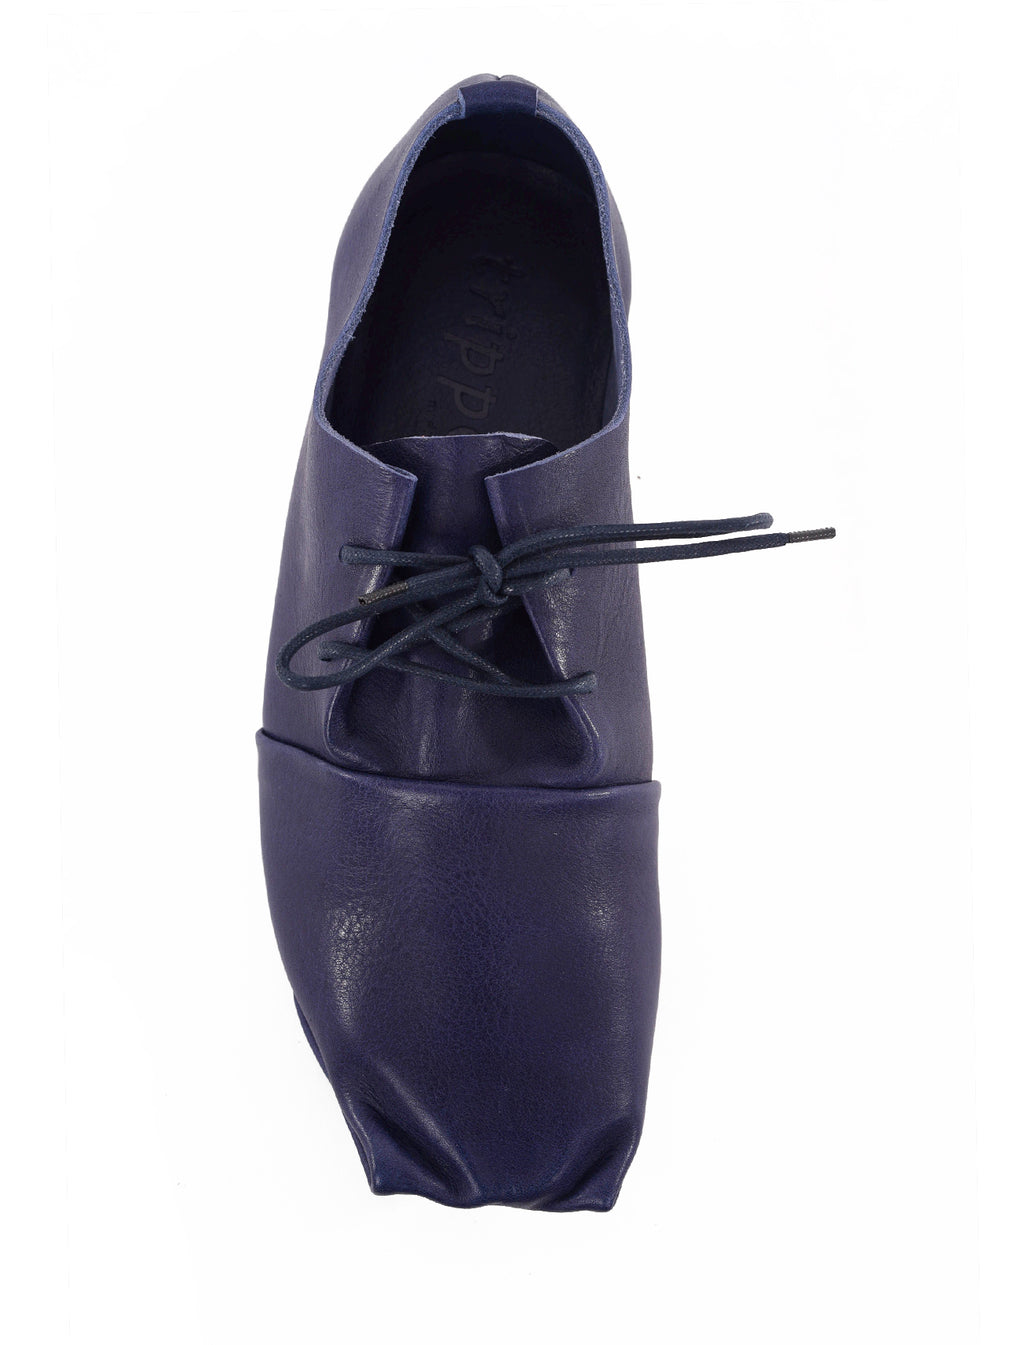 Trippen Shoes Bounce Penna Oxford, Blue Waw